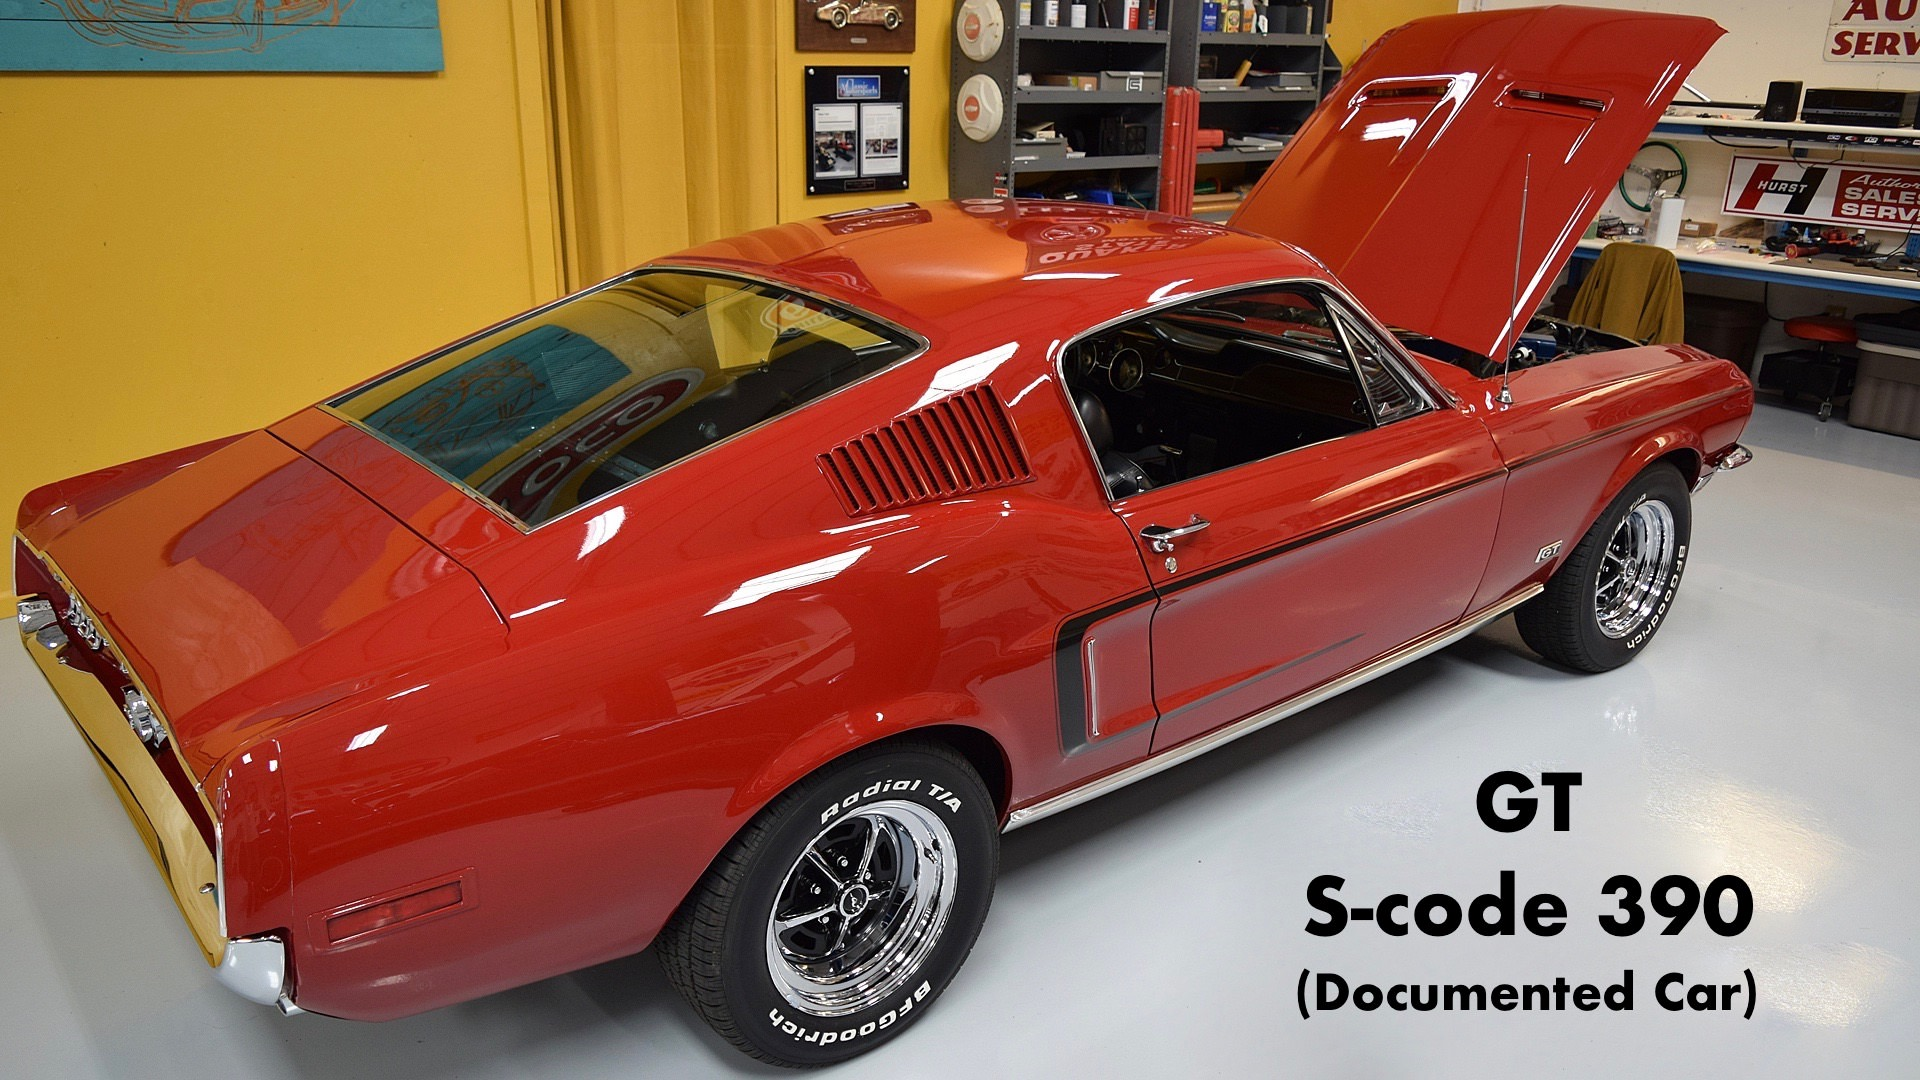 1968 Mustang Fastback GT 390 S-code – DOCUMENTED